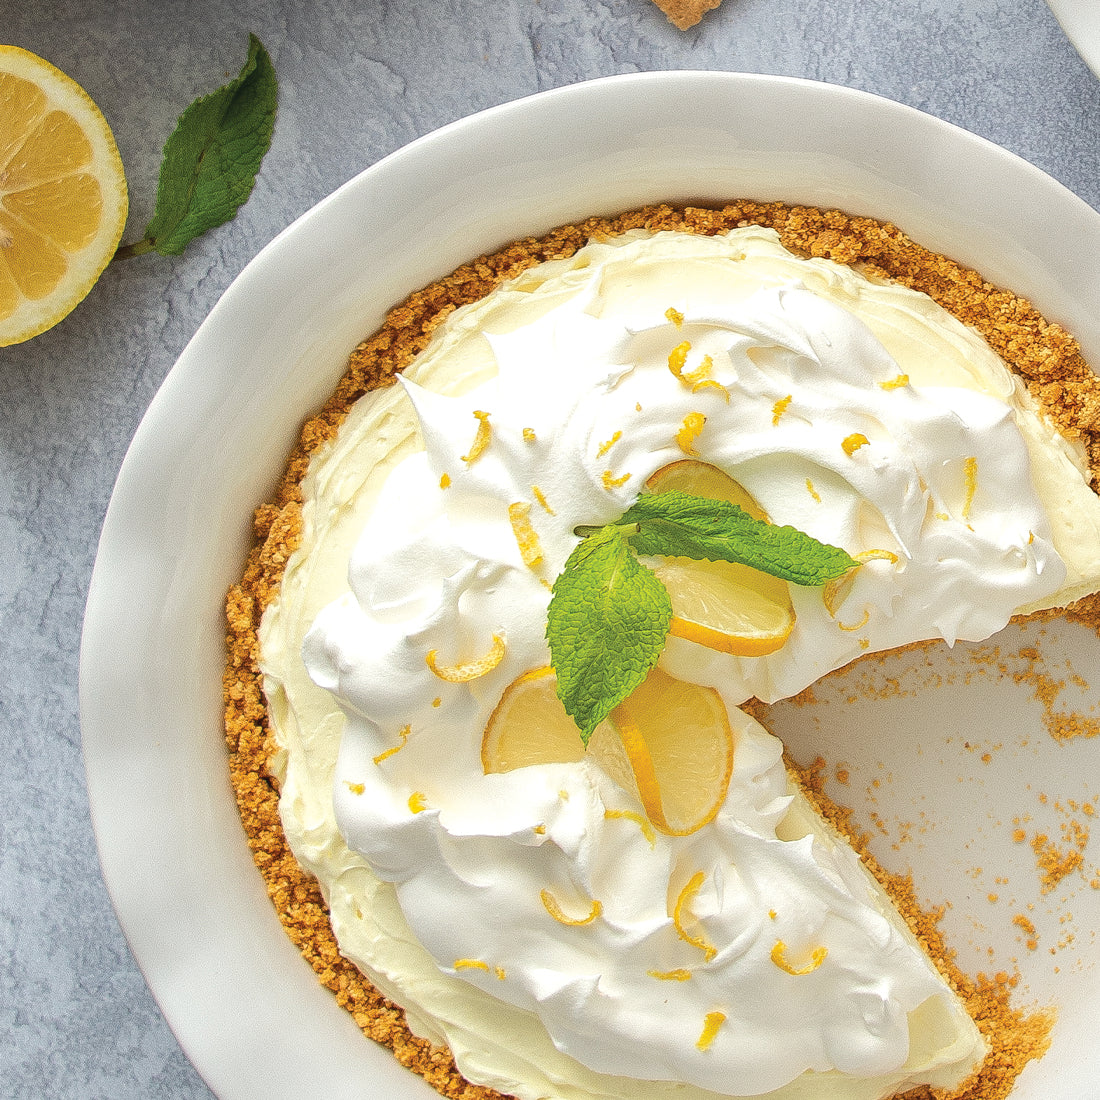 Lemon Drop No-Bake Cheesecake in pie dish garnished with lemon zest and mint.